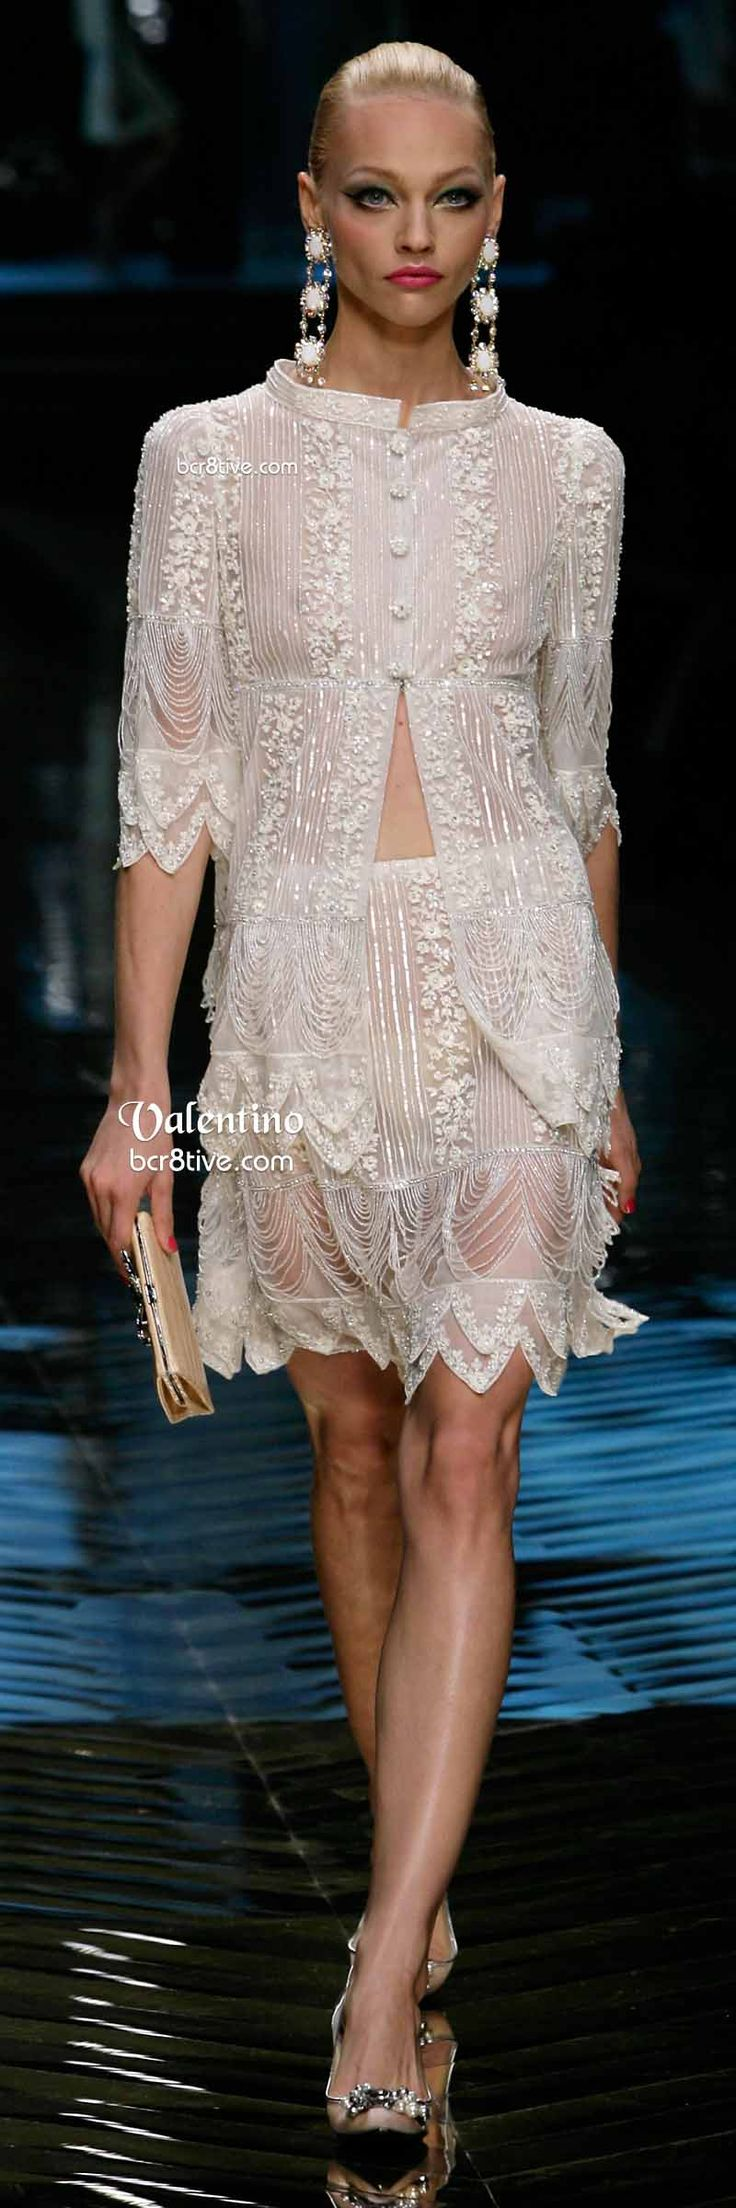 Valentino's final collection